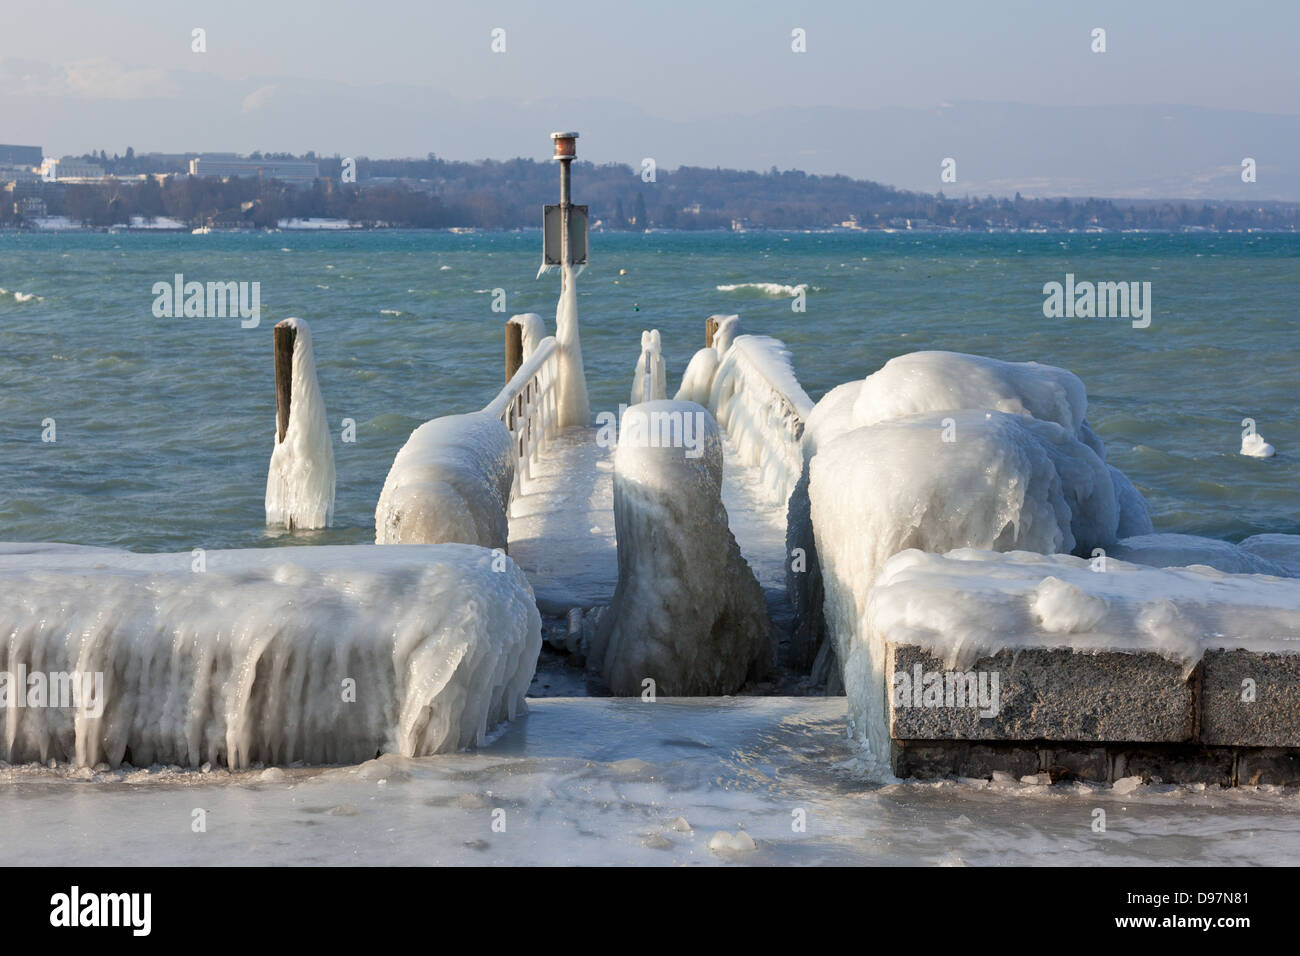 Very cold temperature give ice and freeze at the lake Leman border in Geneve - Stock Image